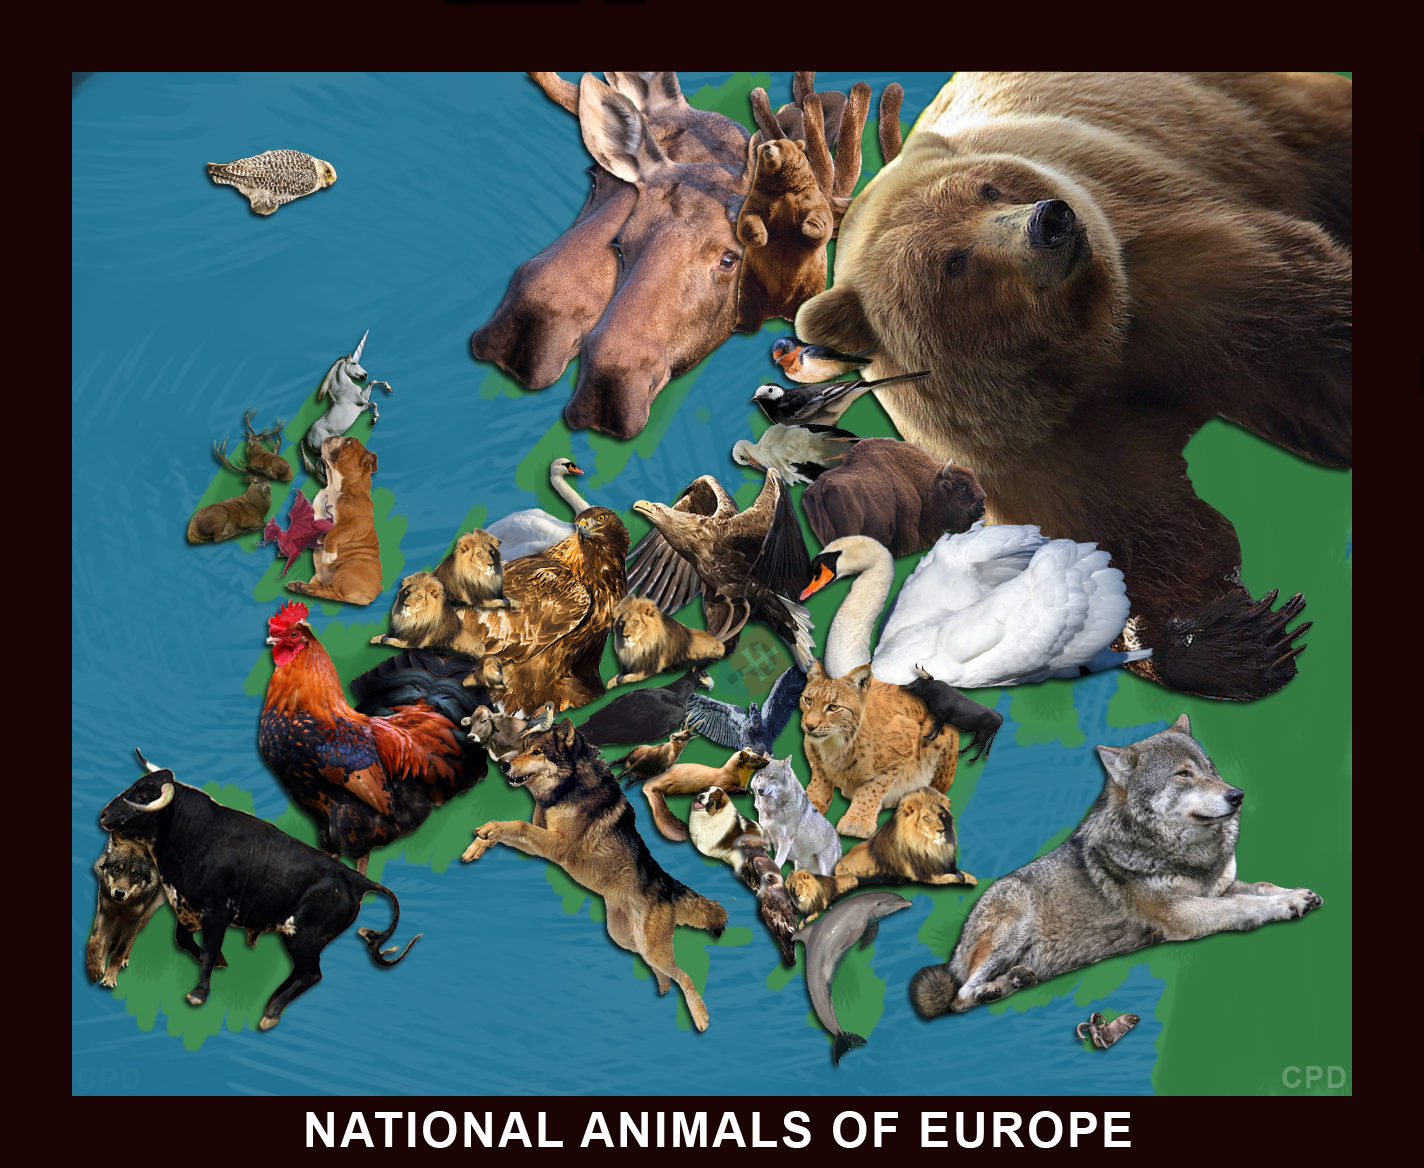 National Animals of Europe [OC] : MapPorn.